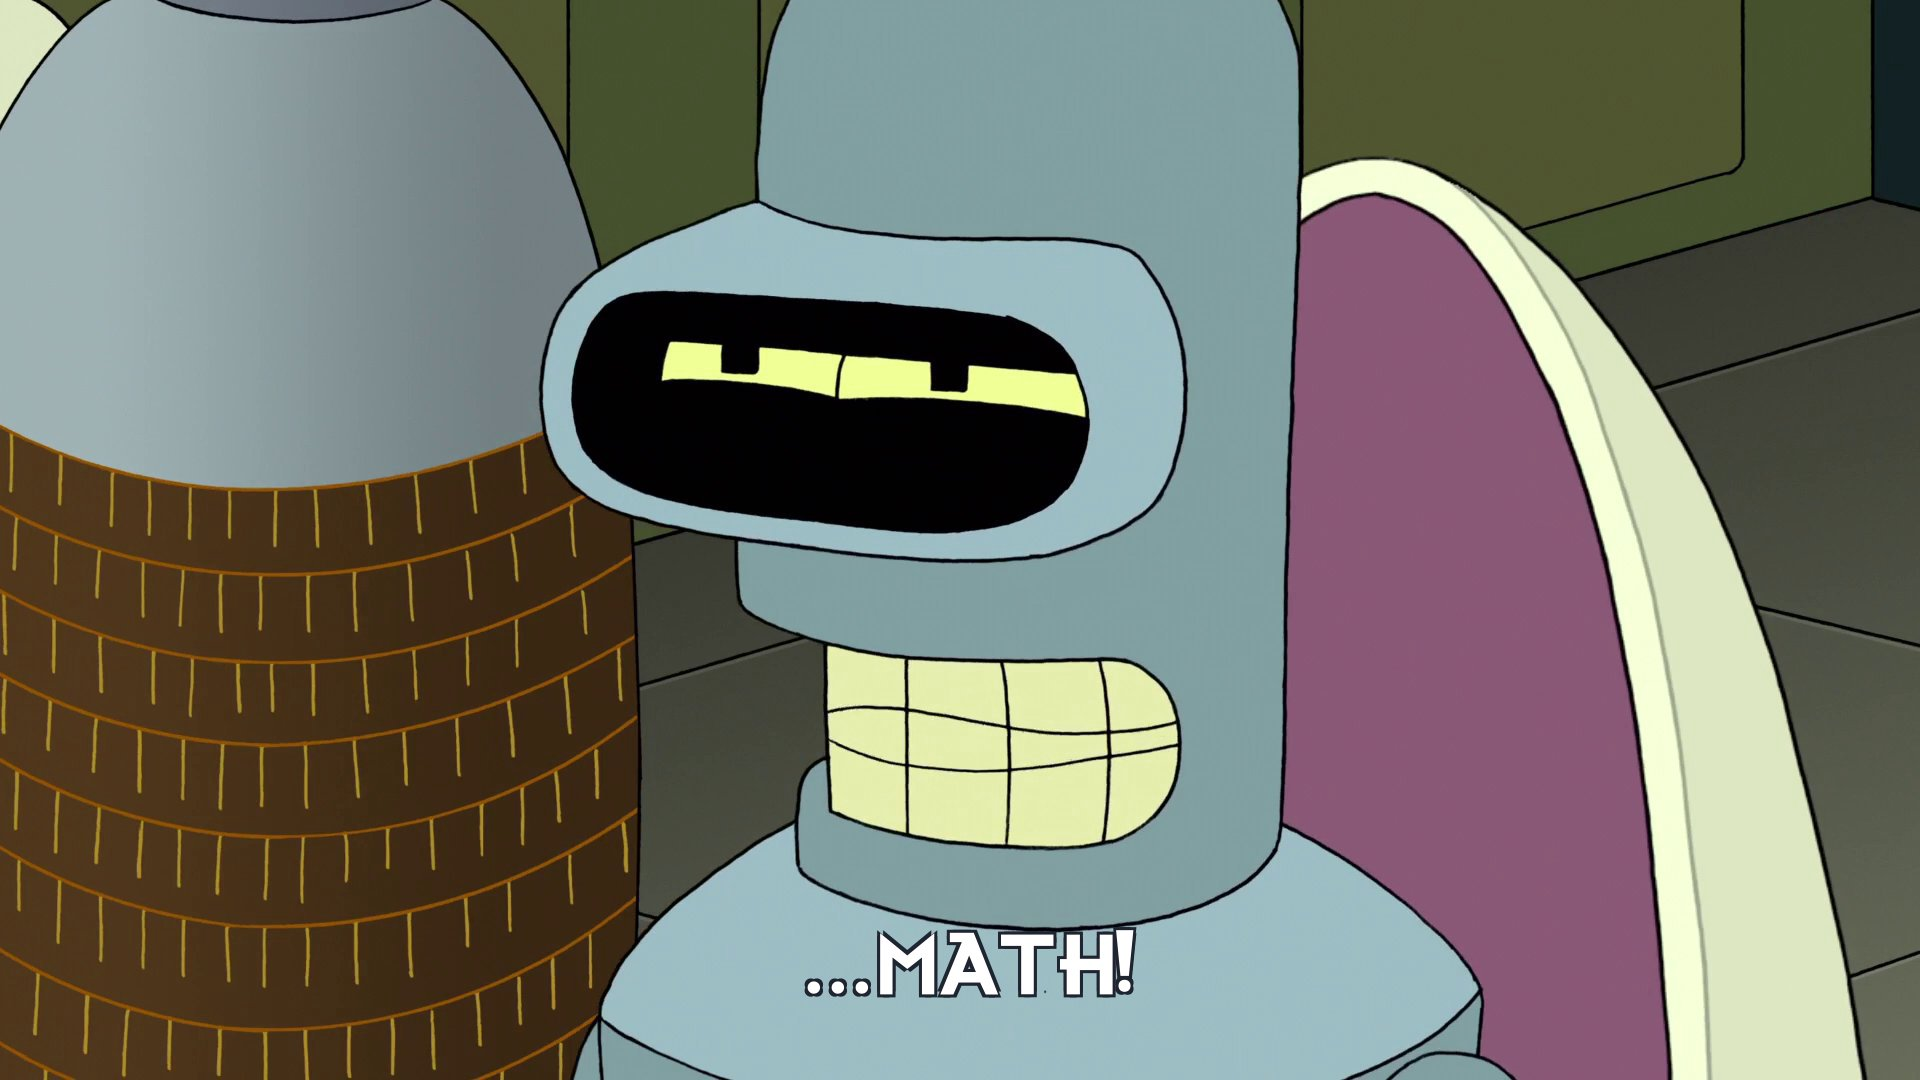 Prof Hubert J Farnsworth [in Bender Bending Rodriguez's body]: ...math!